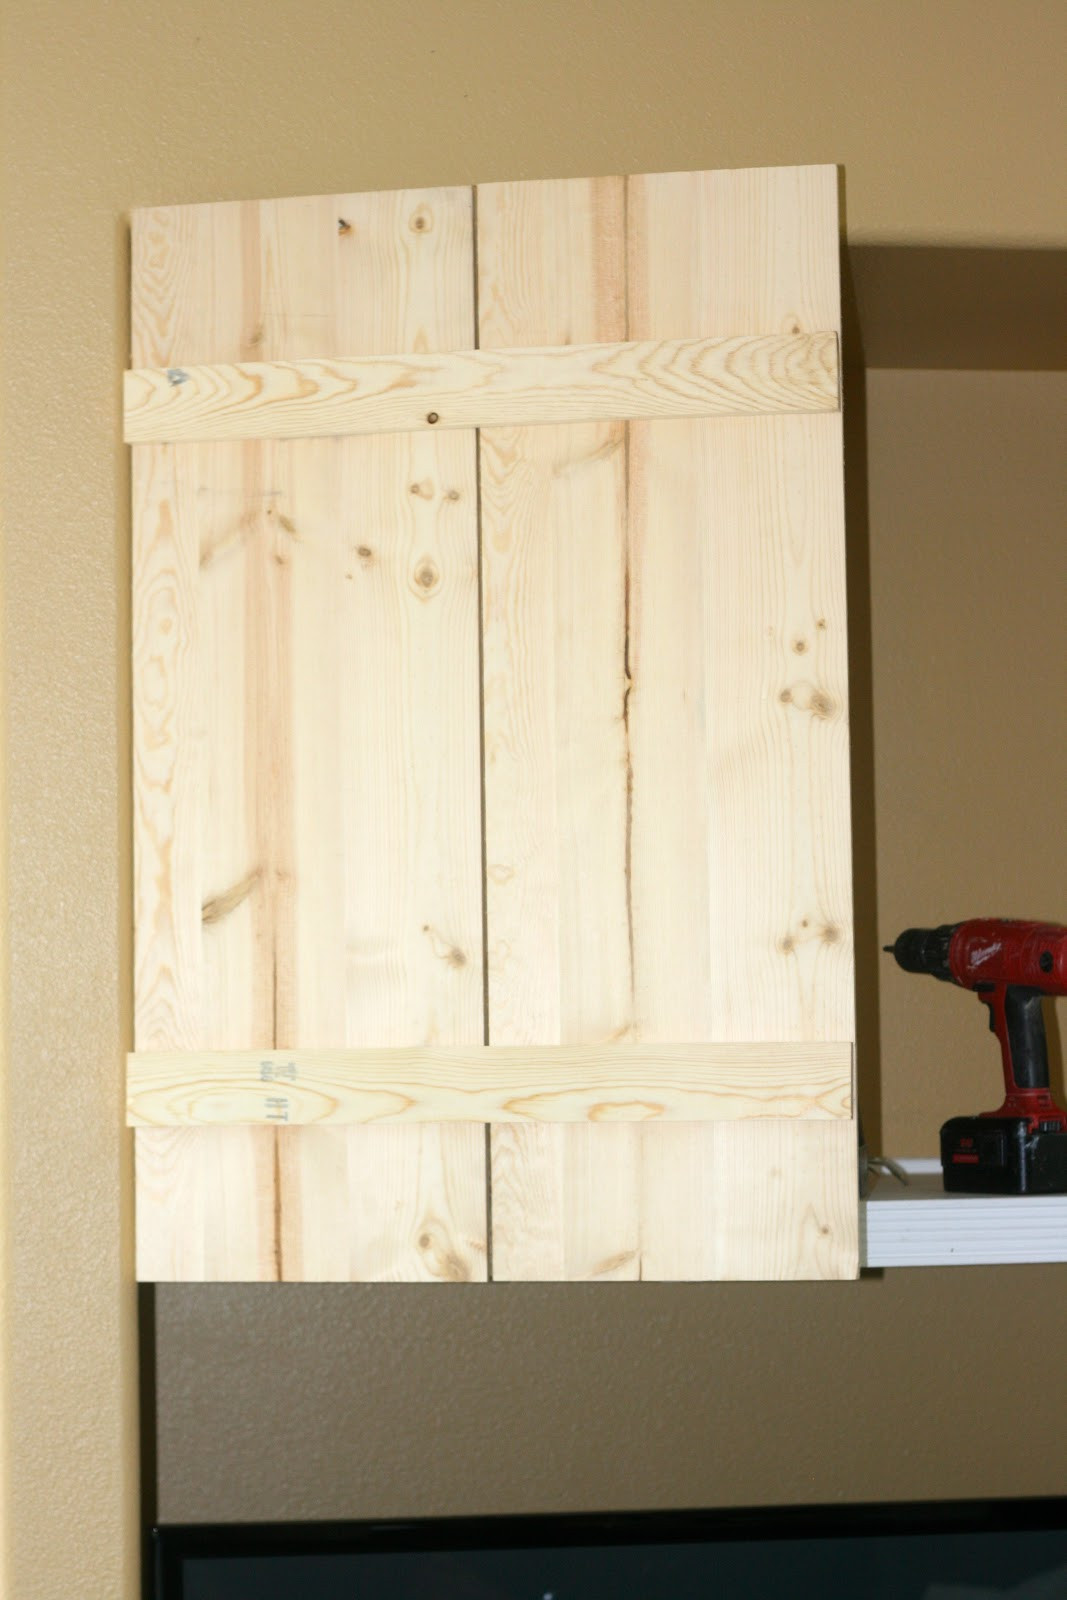 Best ideas about DIY Cabinet Doors . Save or Pin Finley Gray Diy Barn Cabinet Doors Now.